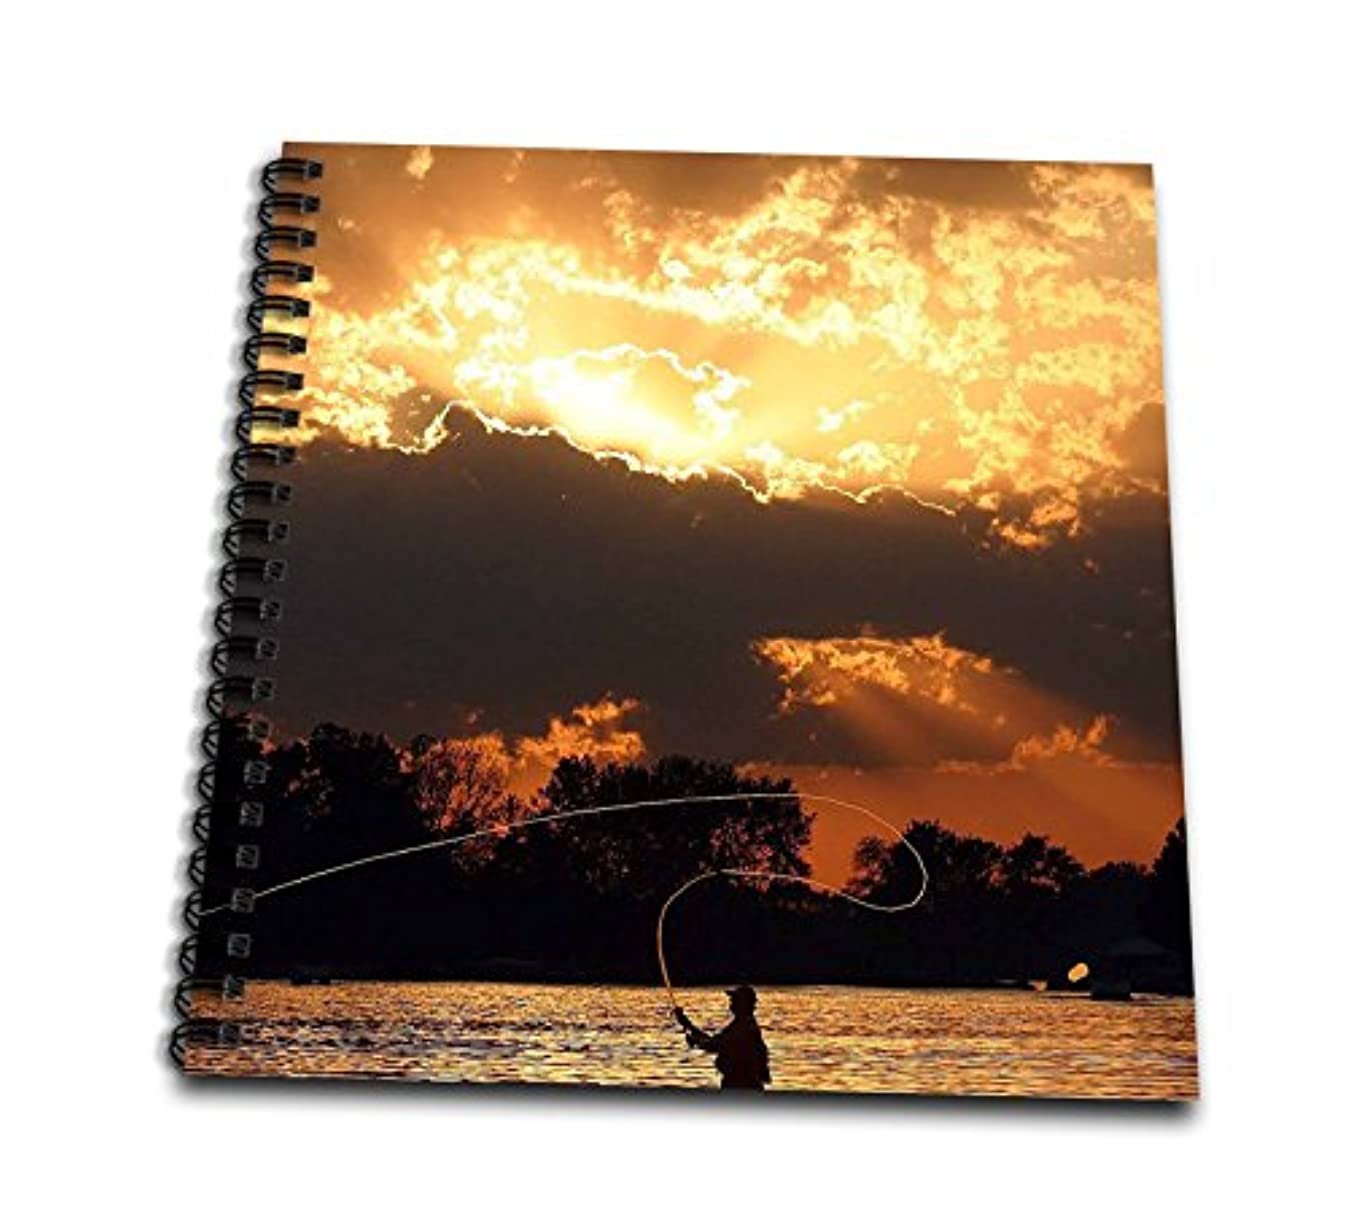 3dRose db_23788_2 Fly Fishing at Sunset Memory Book, 12 by 12-Inch